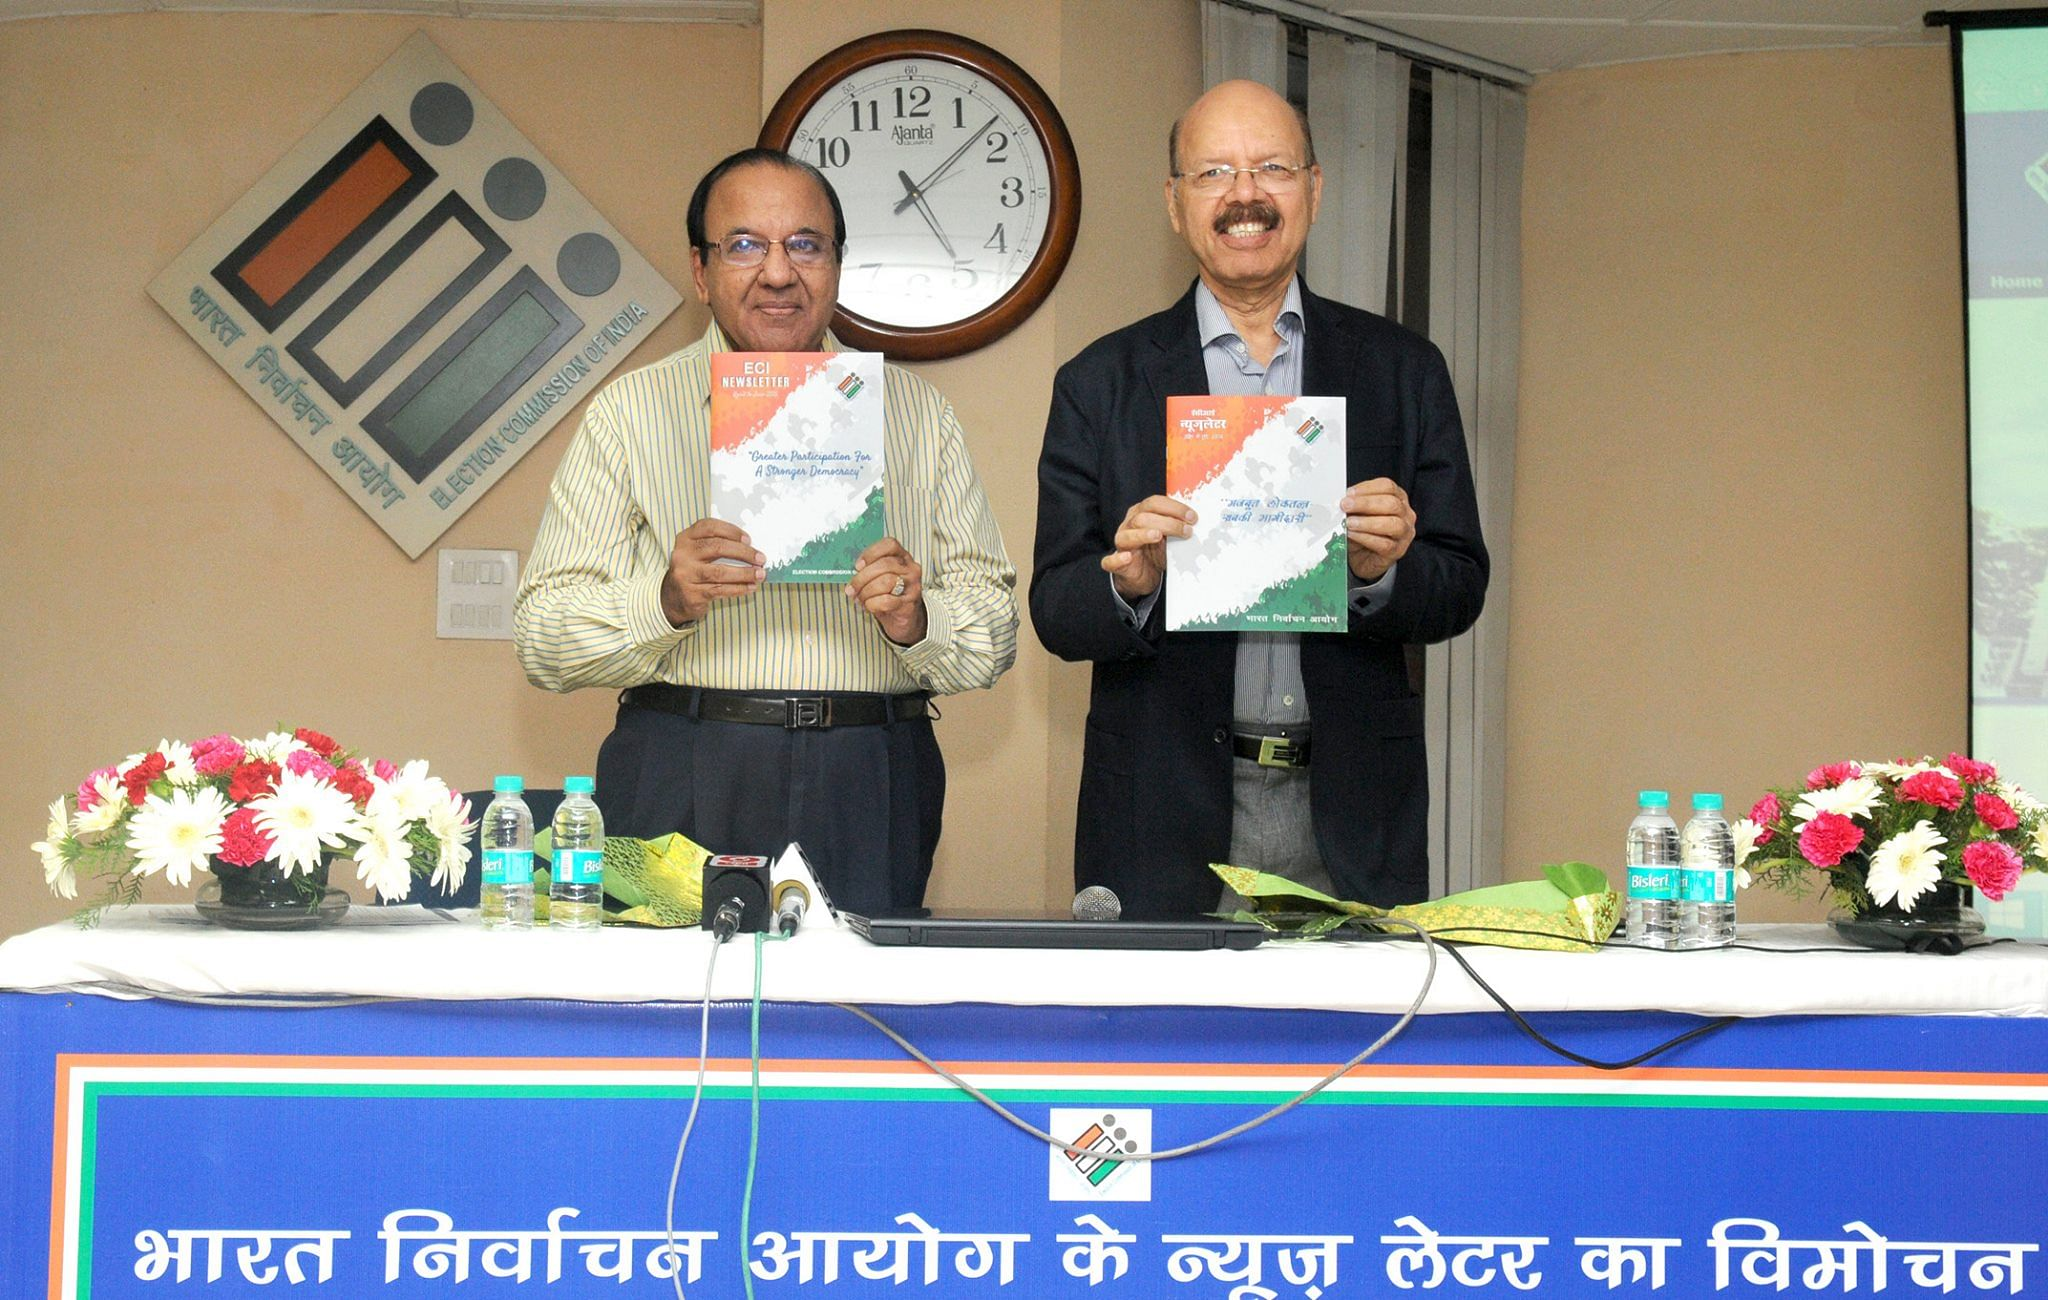 Achal-Kumar-Joti- chief election commissioner-india